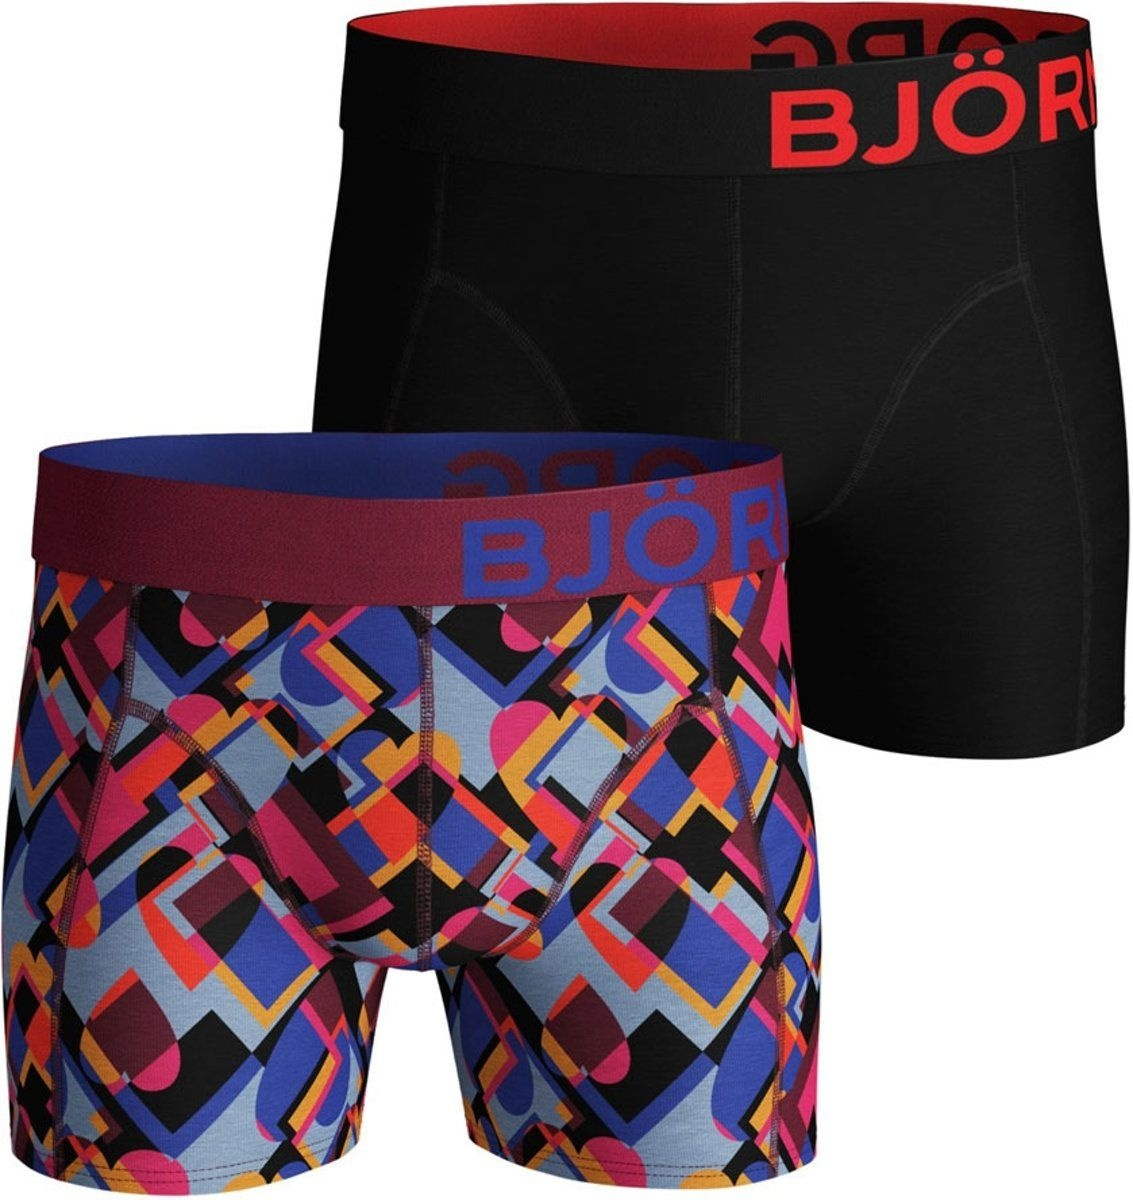 2-Pack Bjorn Borg boxers AMOUR